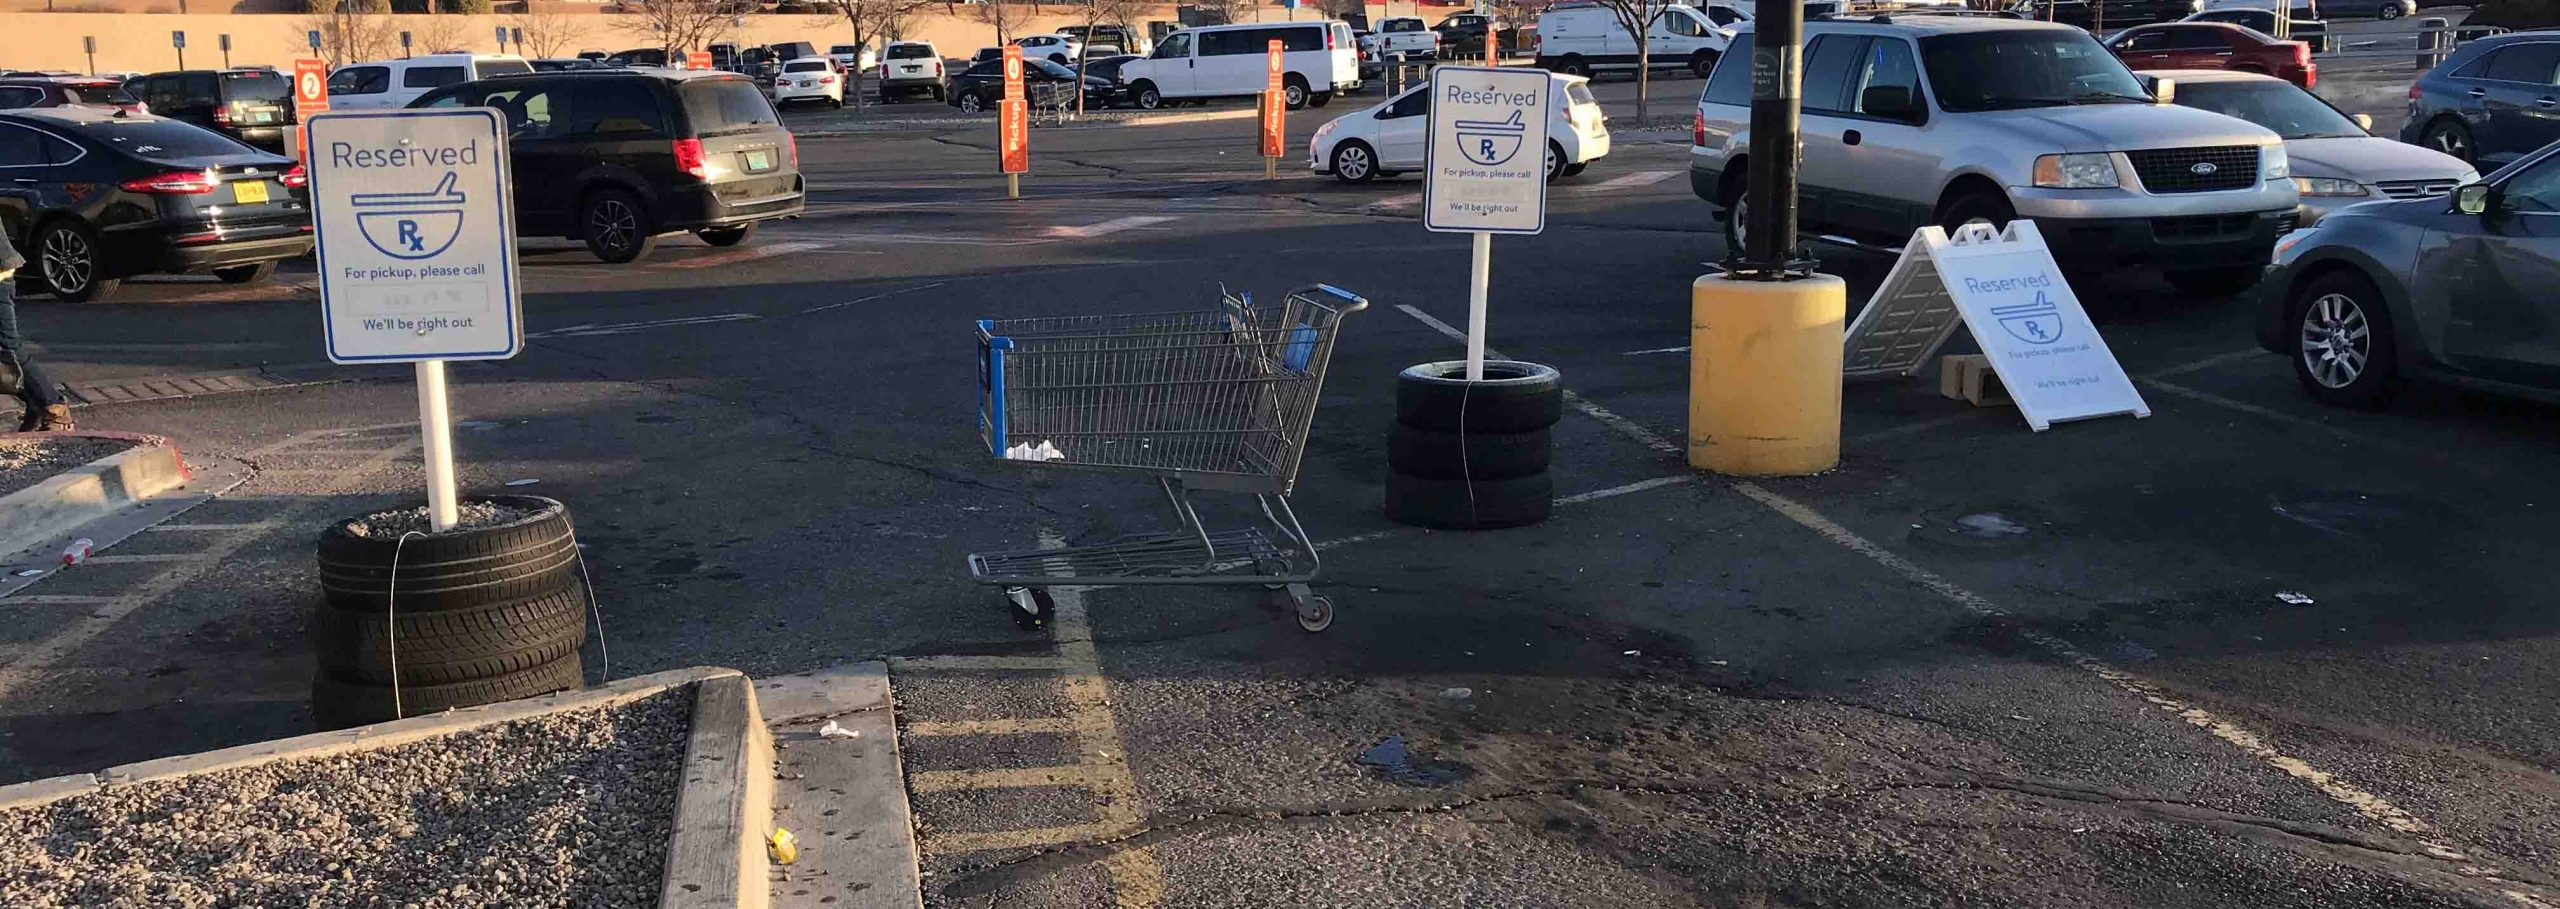 In an effort to adopt quickly to curbside pickup, many retailers grabbed whatever resources were available for creating parking lot signage, often at the expense of long-term durability and brand image..